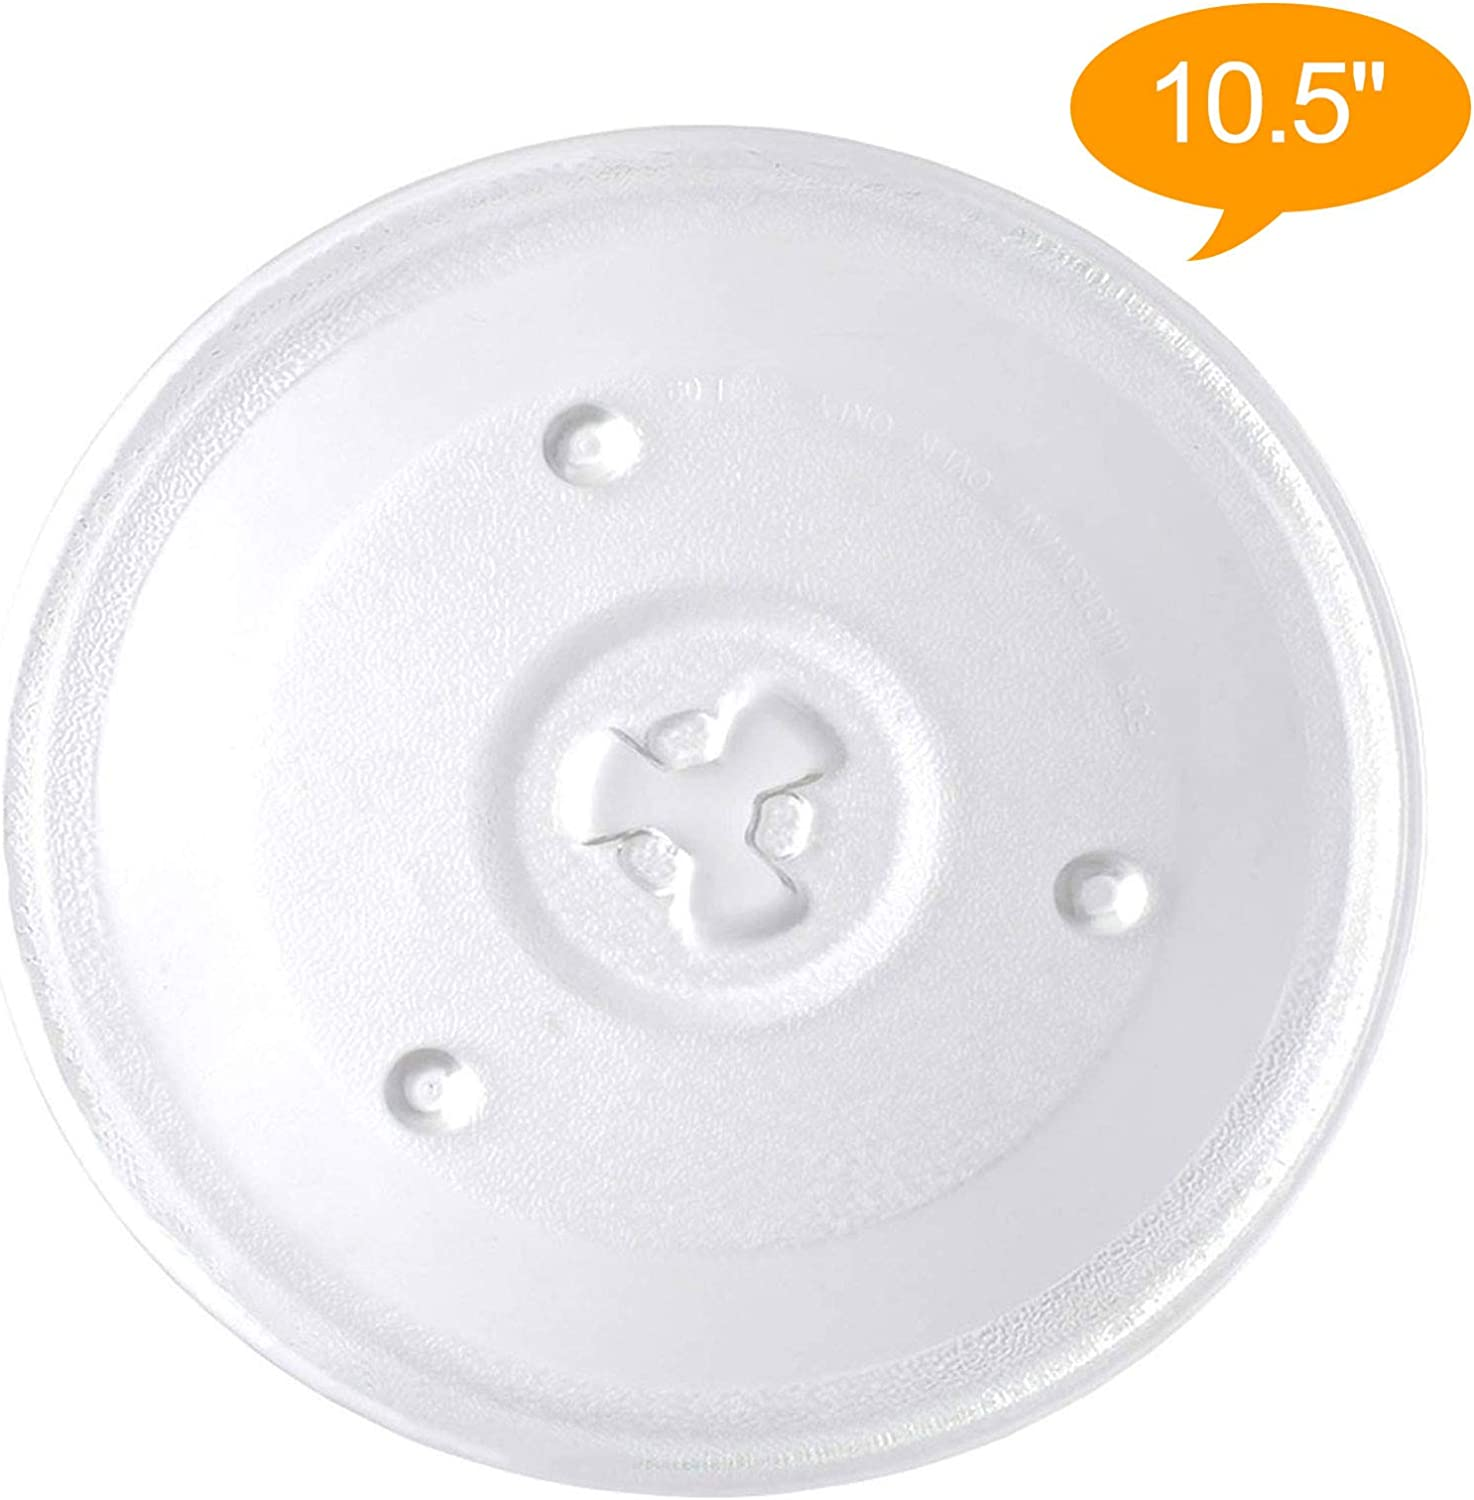 270mm Replacement for Emerson MW8995 Microwave Glass Plate 10 1//2 Compatible with Emerson P23 252100500497 Microwave Glass Turntable Tray